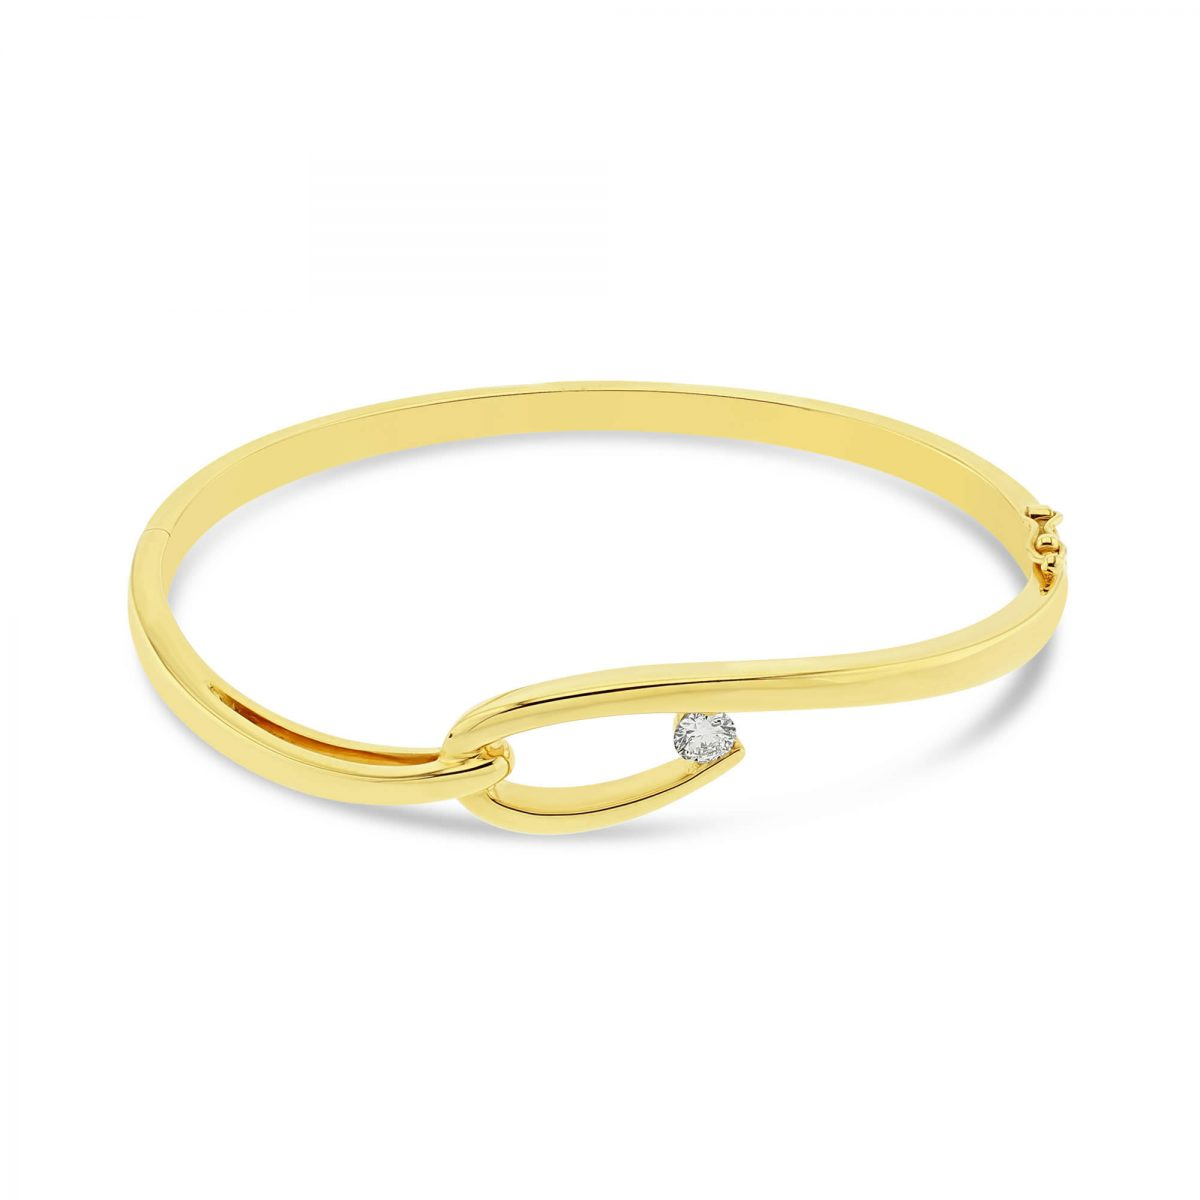 product/3/0/30-22-282-1.jpg;;product/y/o/you_re-the-one-gold-bangle-1.jpg;;product/d/m/dmr-packaging_205.jpg